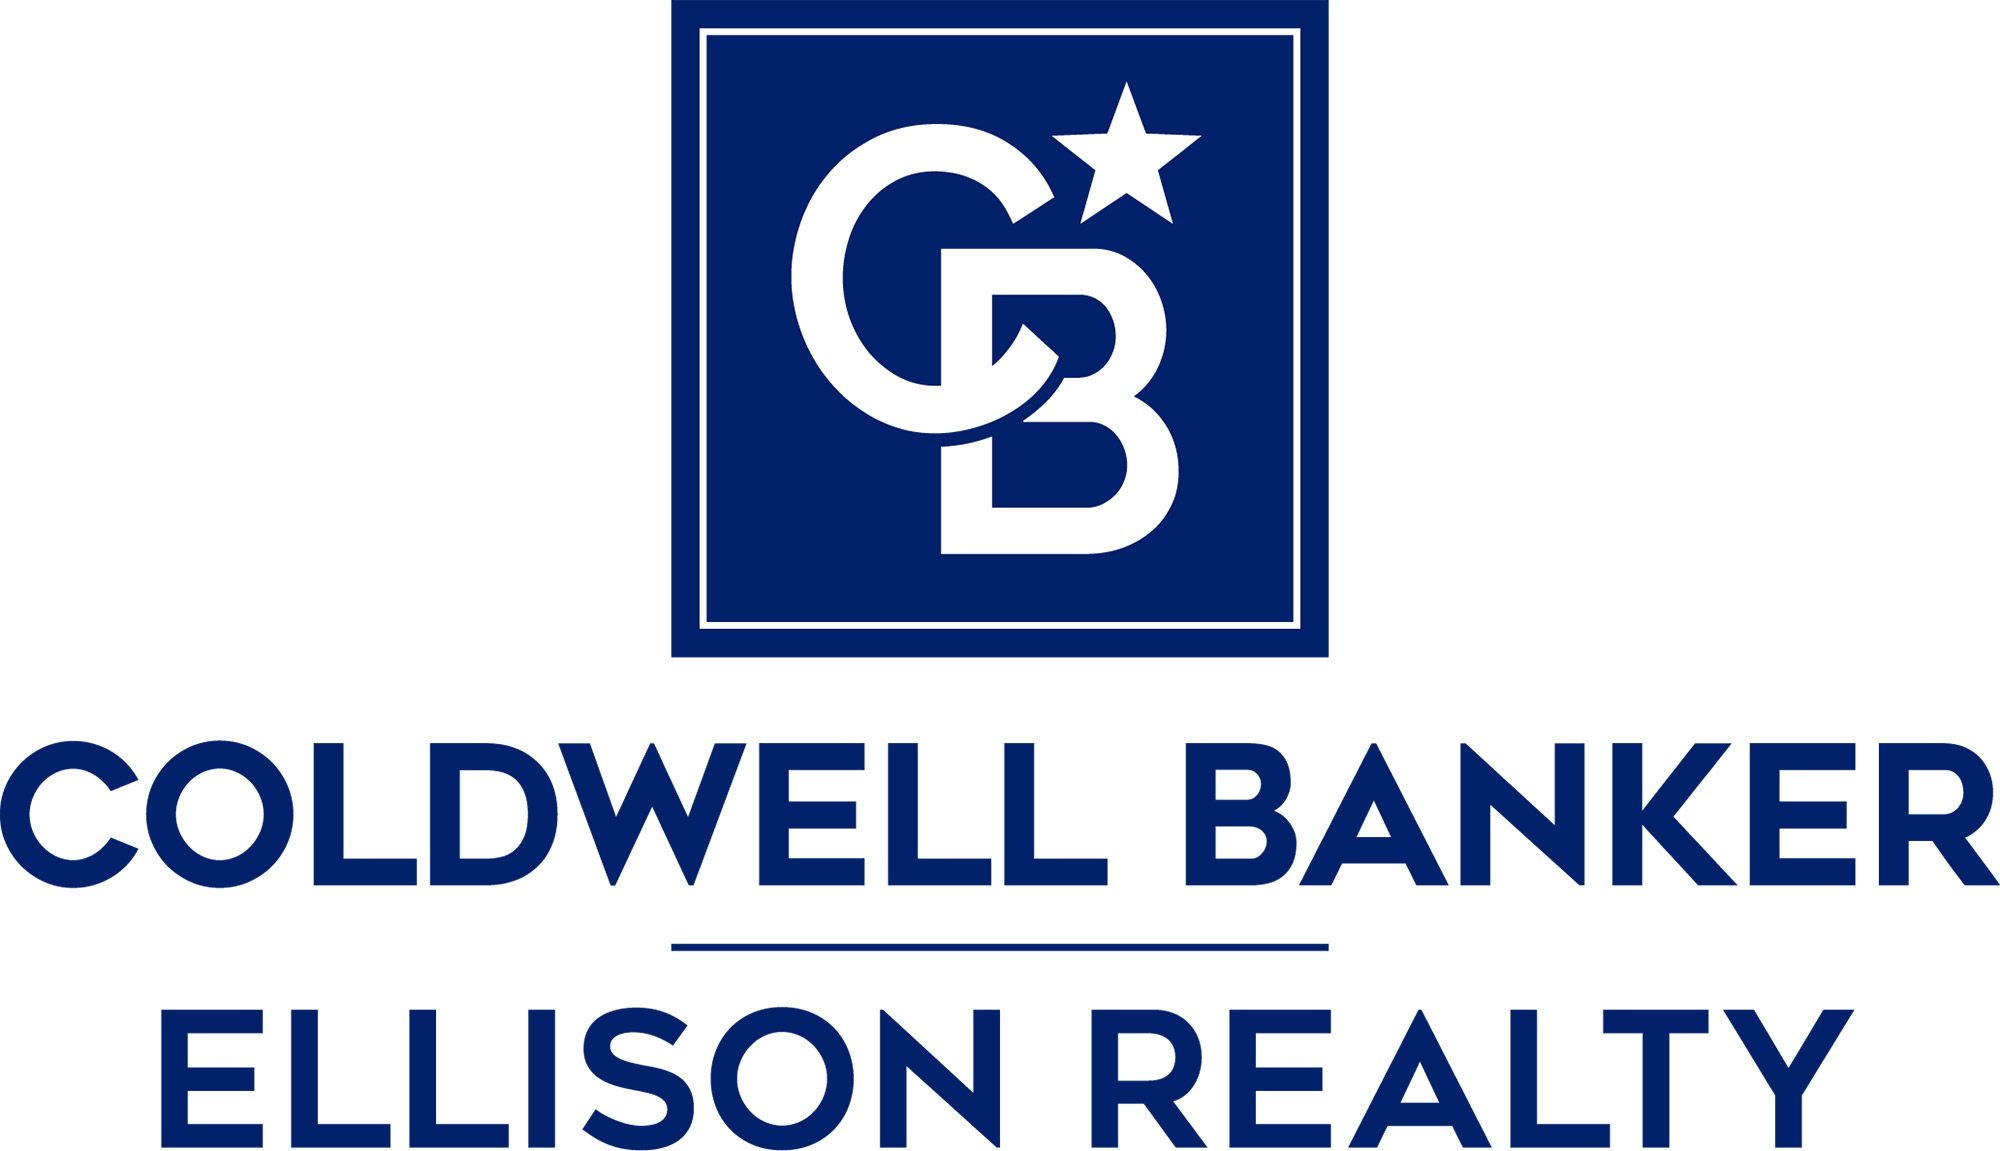 Thomas Peterson - Coldwell Banker Ellison Realty Logo